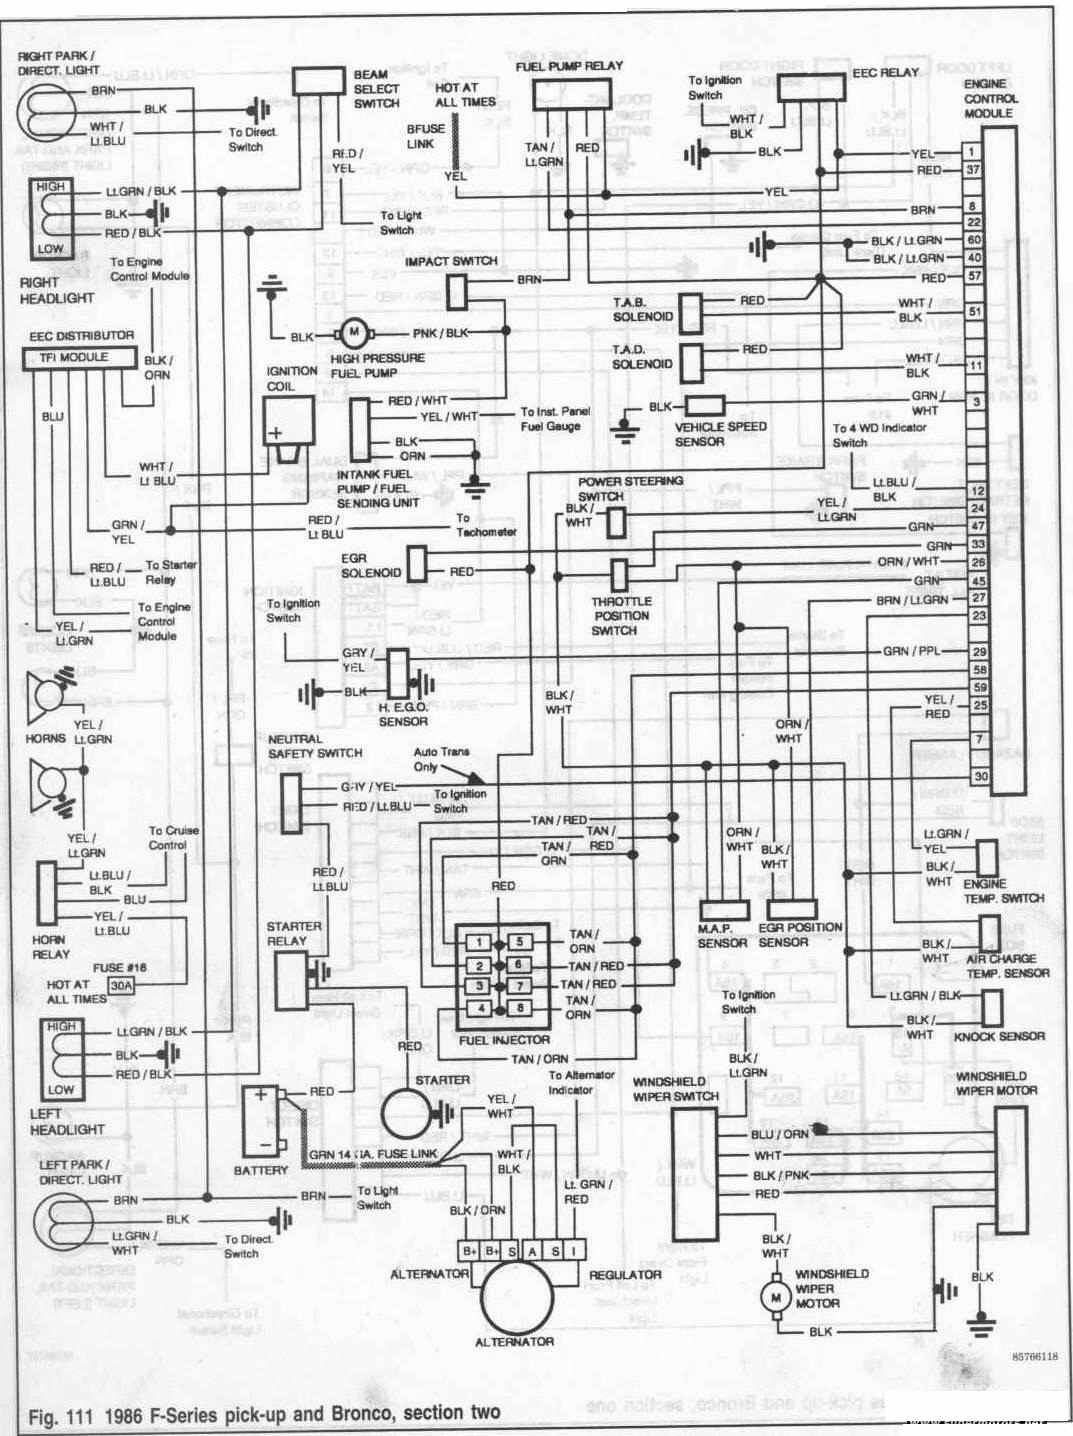 ford f 250 wiring harness diagram icon bronco 1987 ford truck wiring2000 ford f550 diesel wiring schematics index listing of wiring ford f 250 wiring harness diagram icon bronco 1987 ford truck wiring